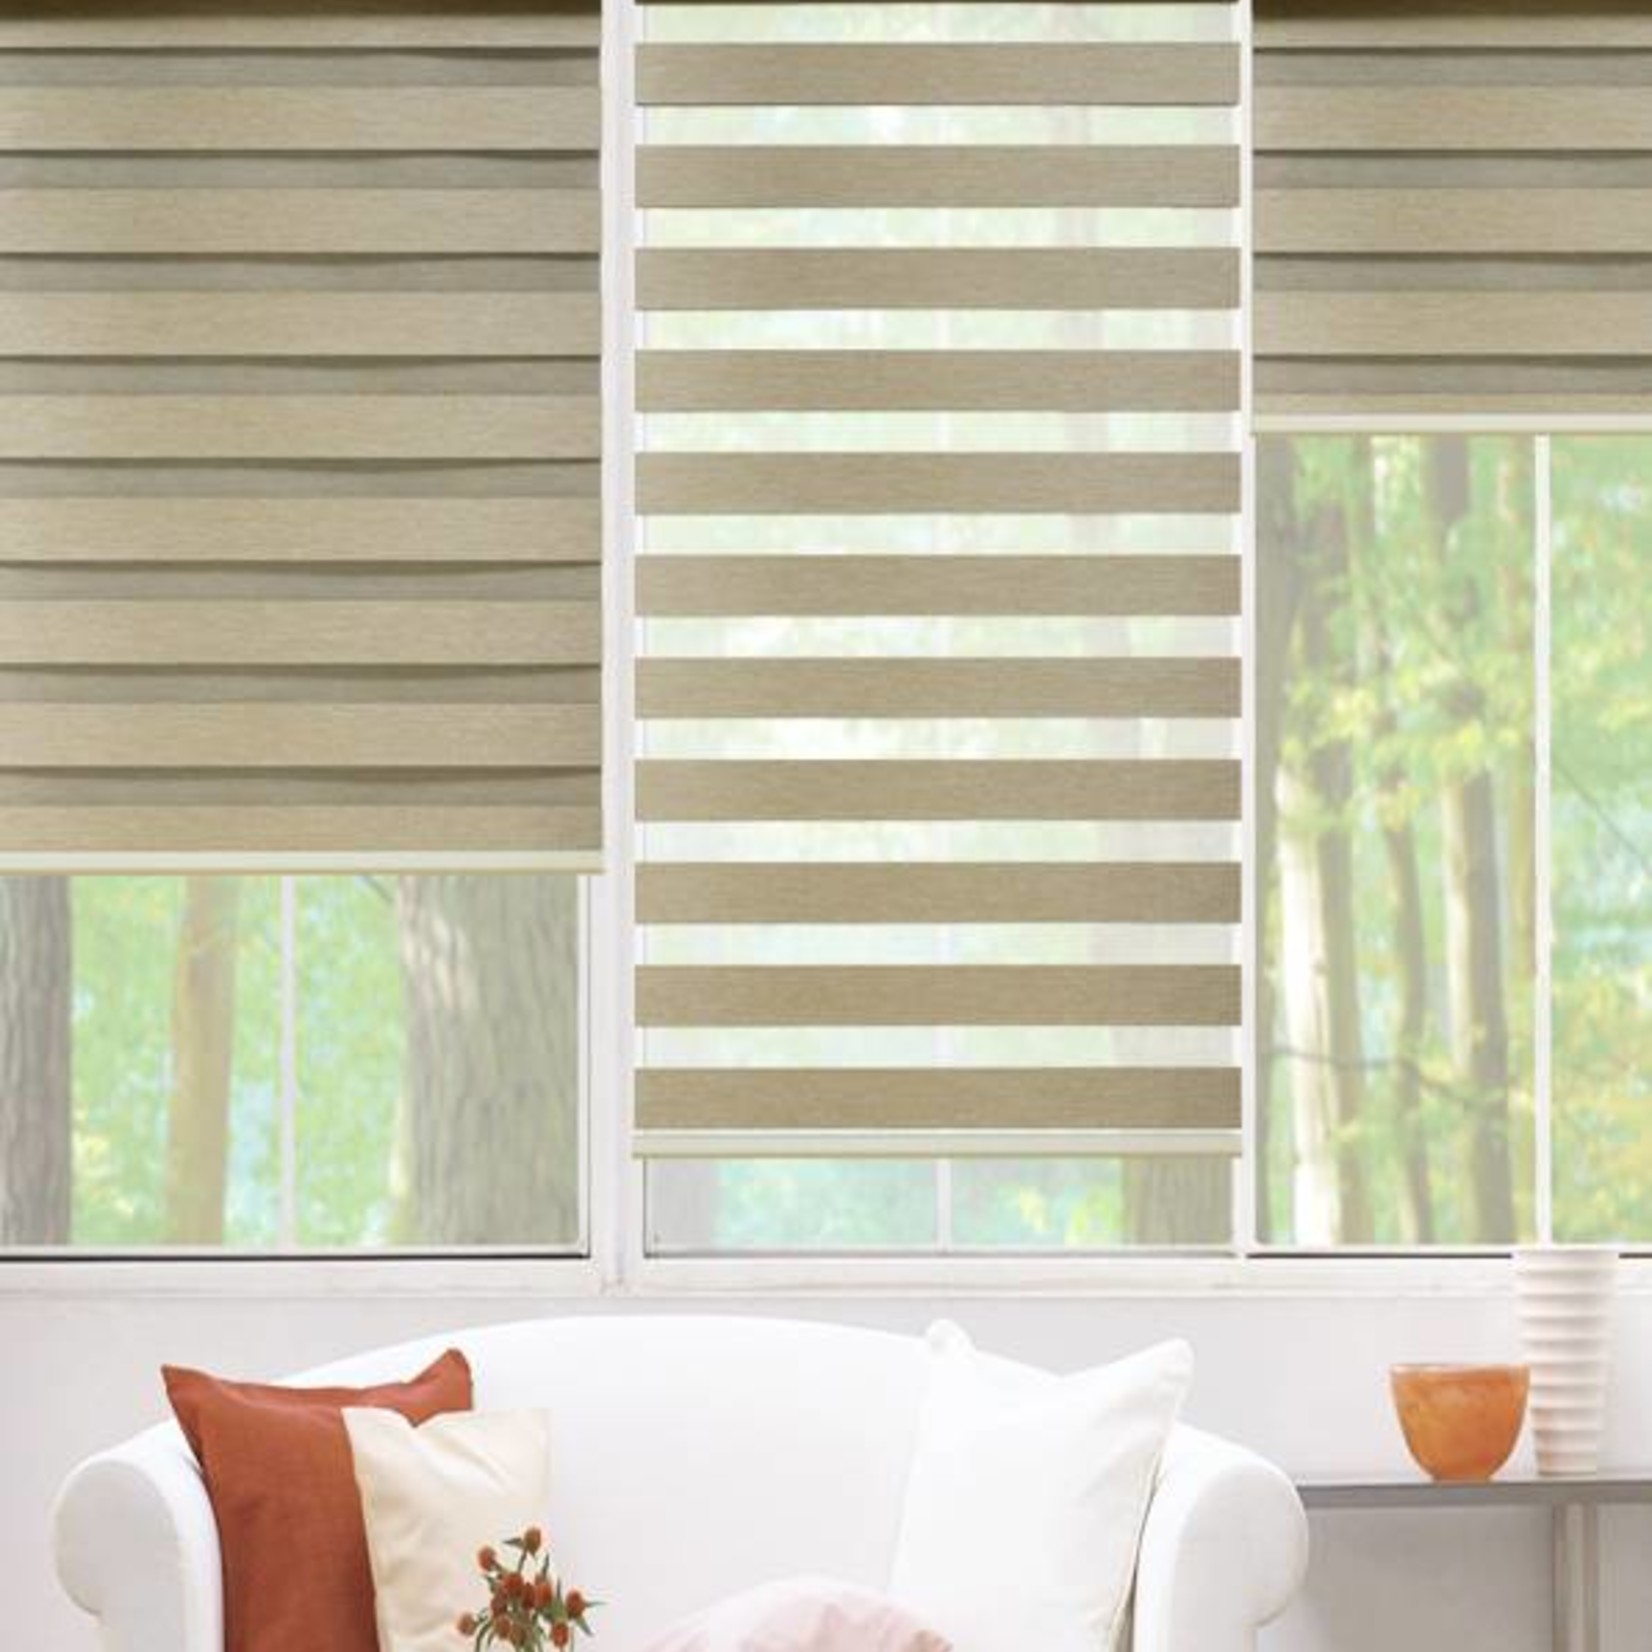 Trendy Blinds Combi Apollon BO room darkening